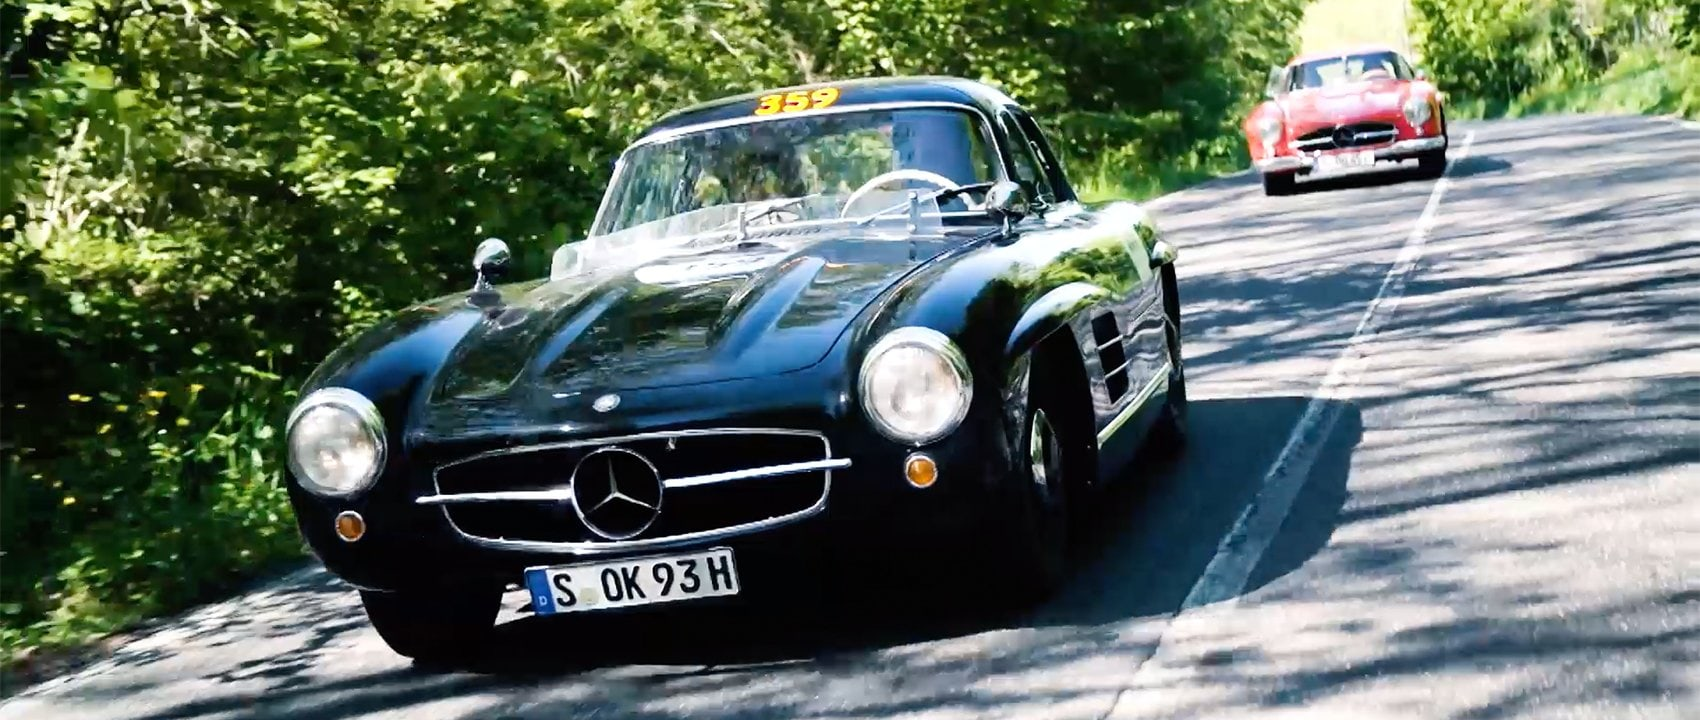 Mercedes-Benz 300 SL at Mille Miglia 2019